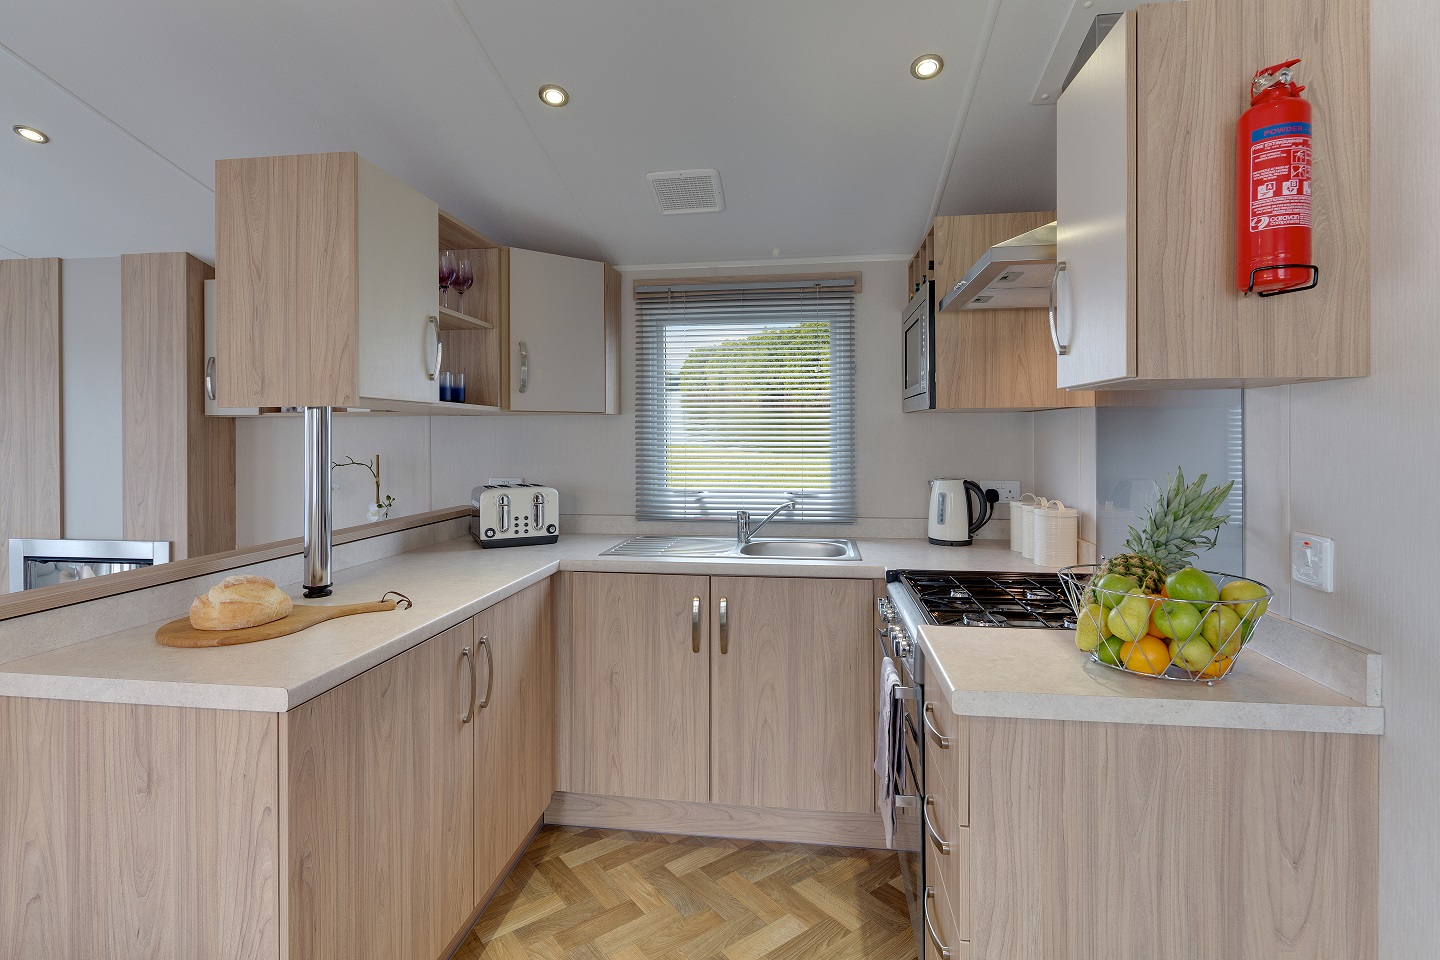 Willerby Brockenhurst: New Static Caravans and Holiday Homes for Sale, Clifton, Morpeth Large Image 2